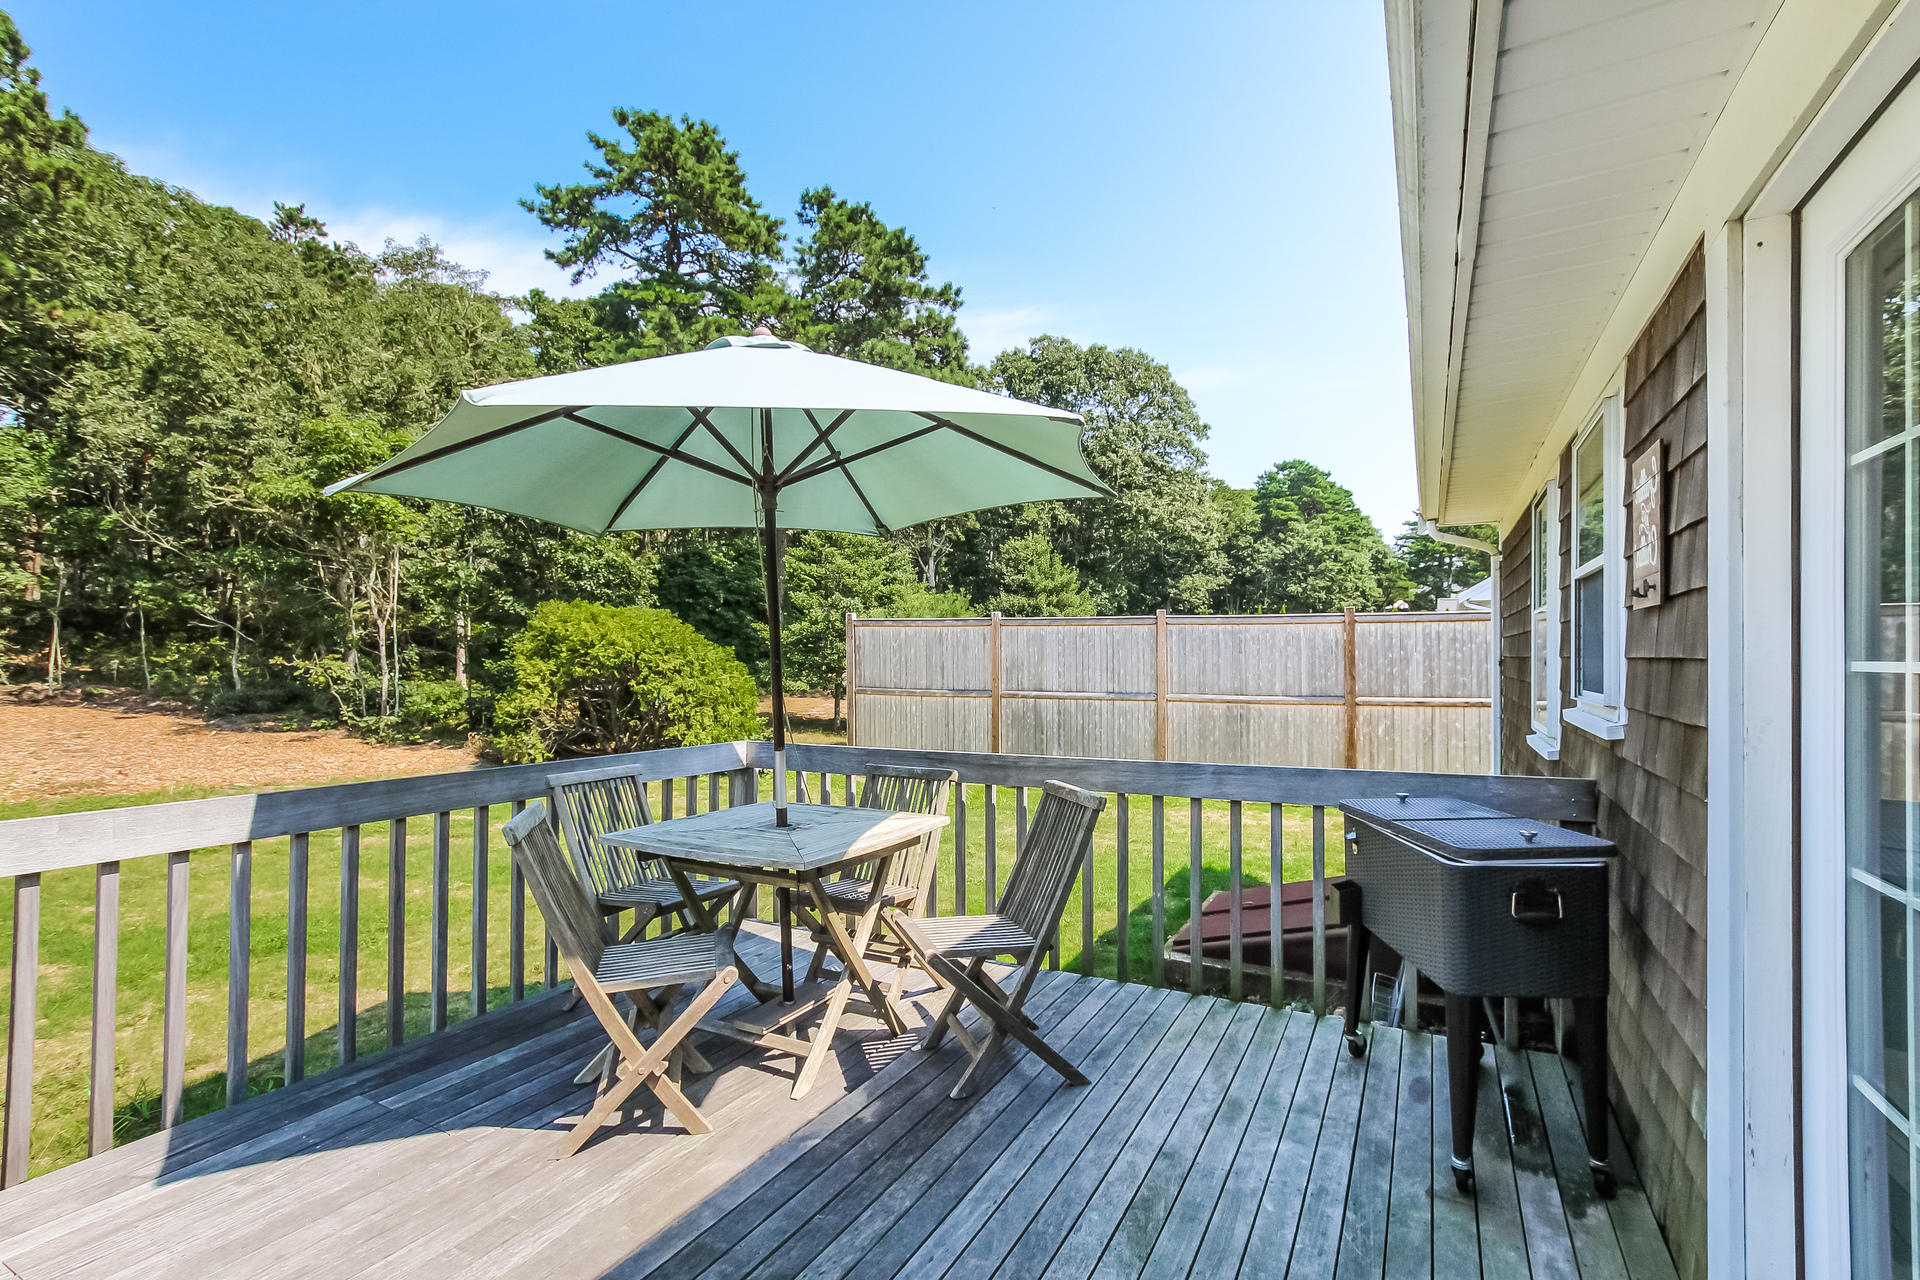 Fashionable 13 Huckleberry Path, Harwich, 02645, Harwich – Sold Listing, Mls #  (View 5 of 20)